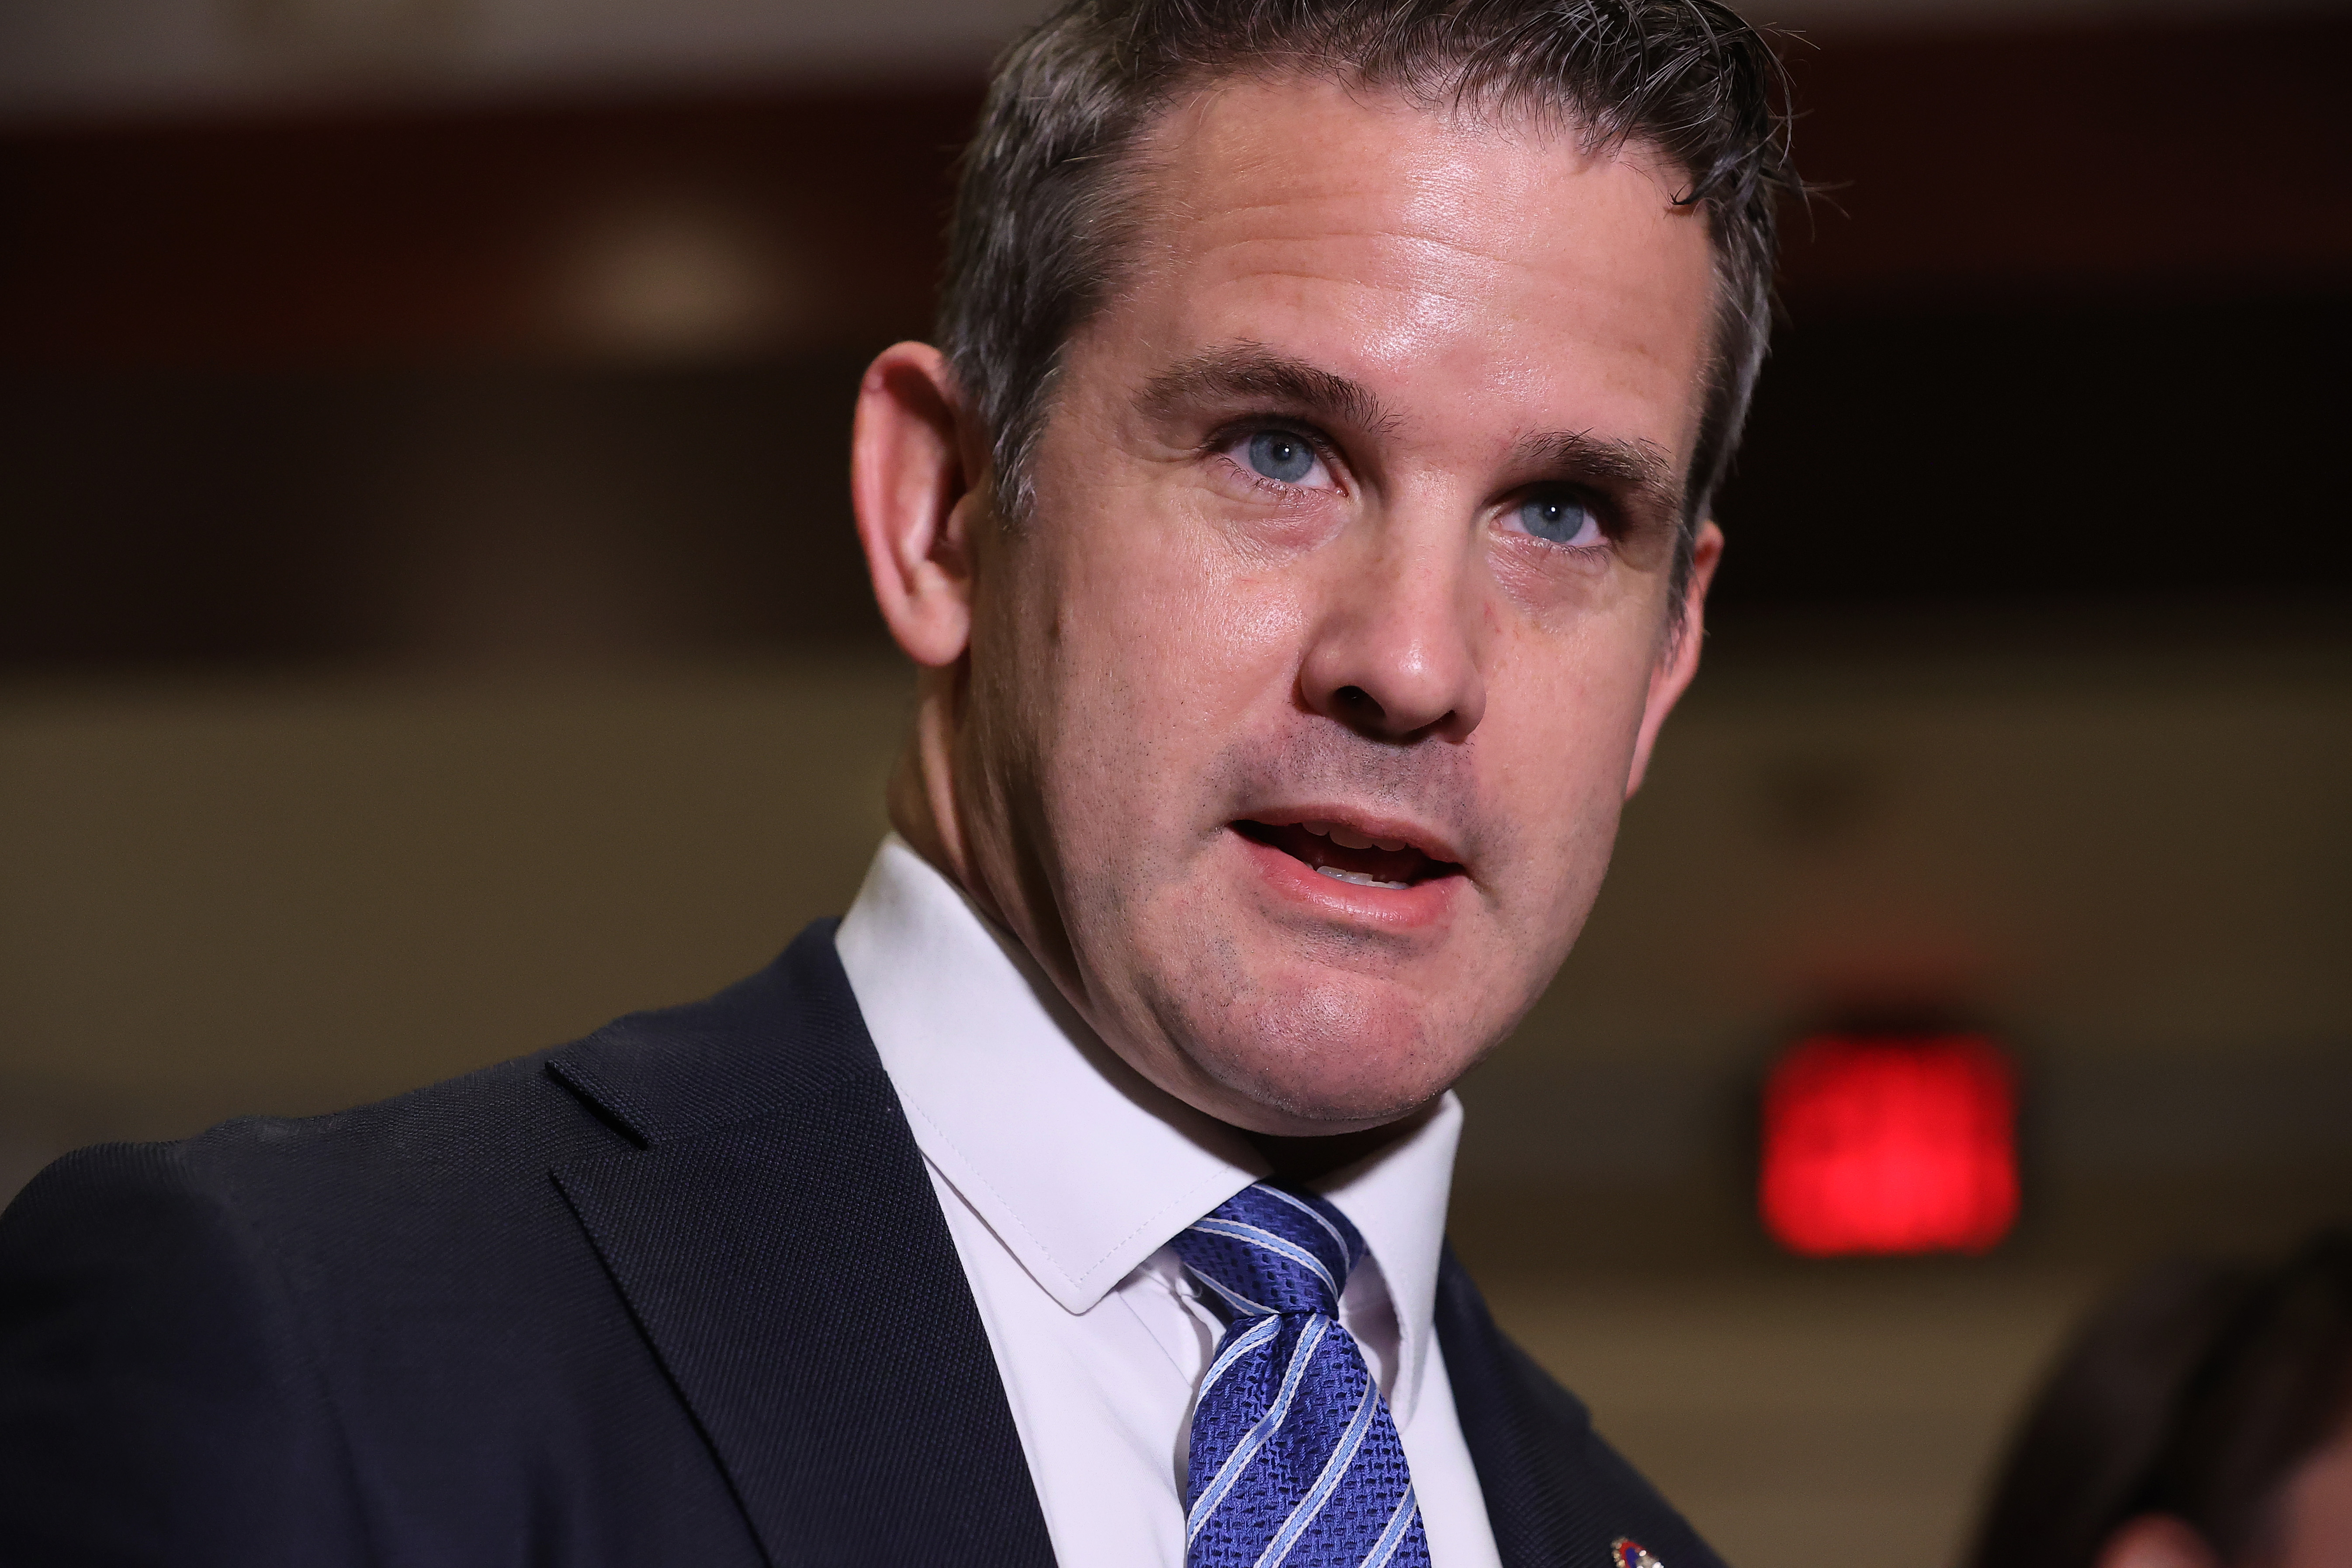 Rep. Adam Kinzinger (R-Ill.) in the U.S. Capitol Visitors Center in Washington, D.C. (Photo by Chip Somodevilla/Getty Images)